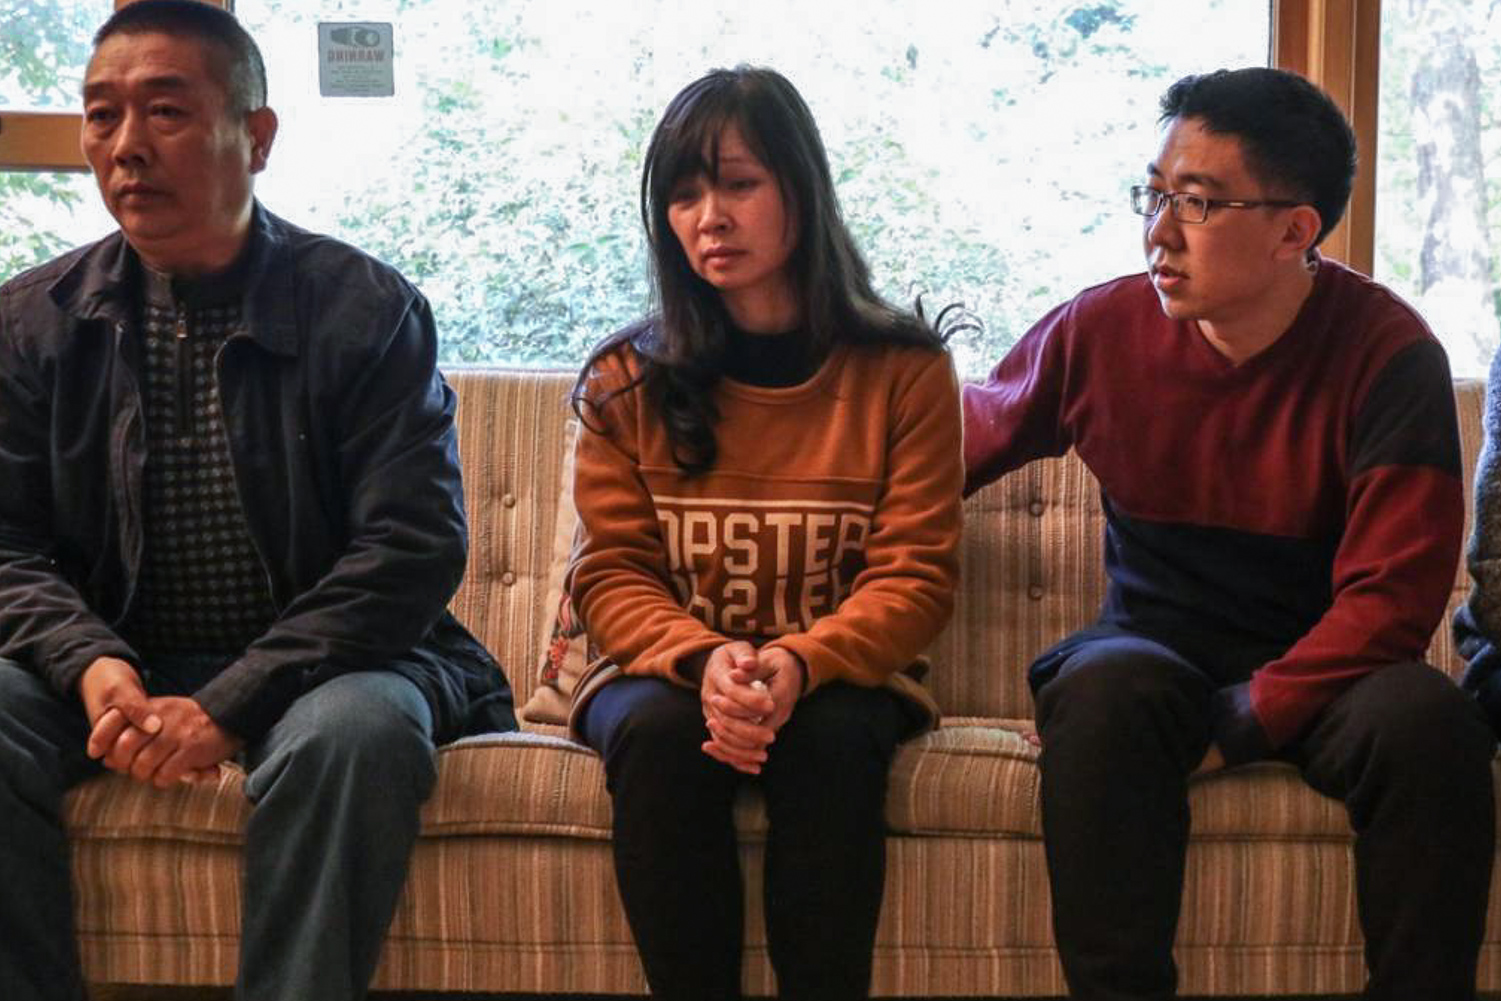 Yingying Zhang's family and boyfriend speak to The Daily Illini from their house on October 27. Saturday marks the one-year anniversary of Zhang's alleged kidnapping.